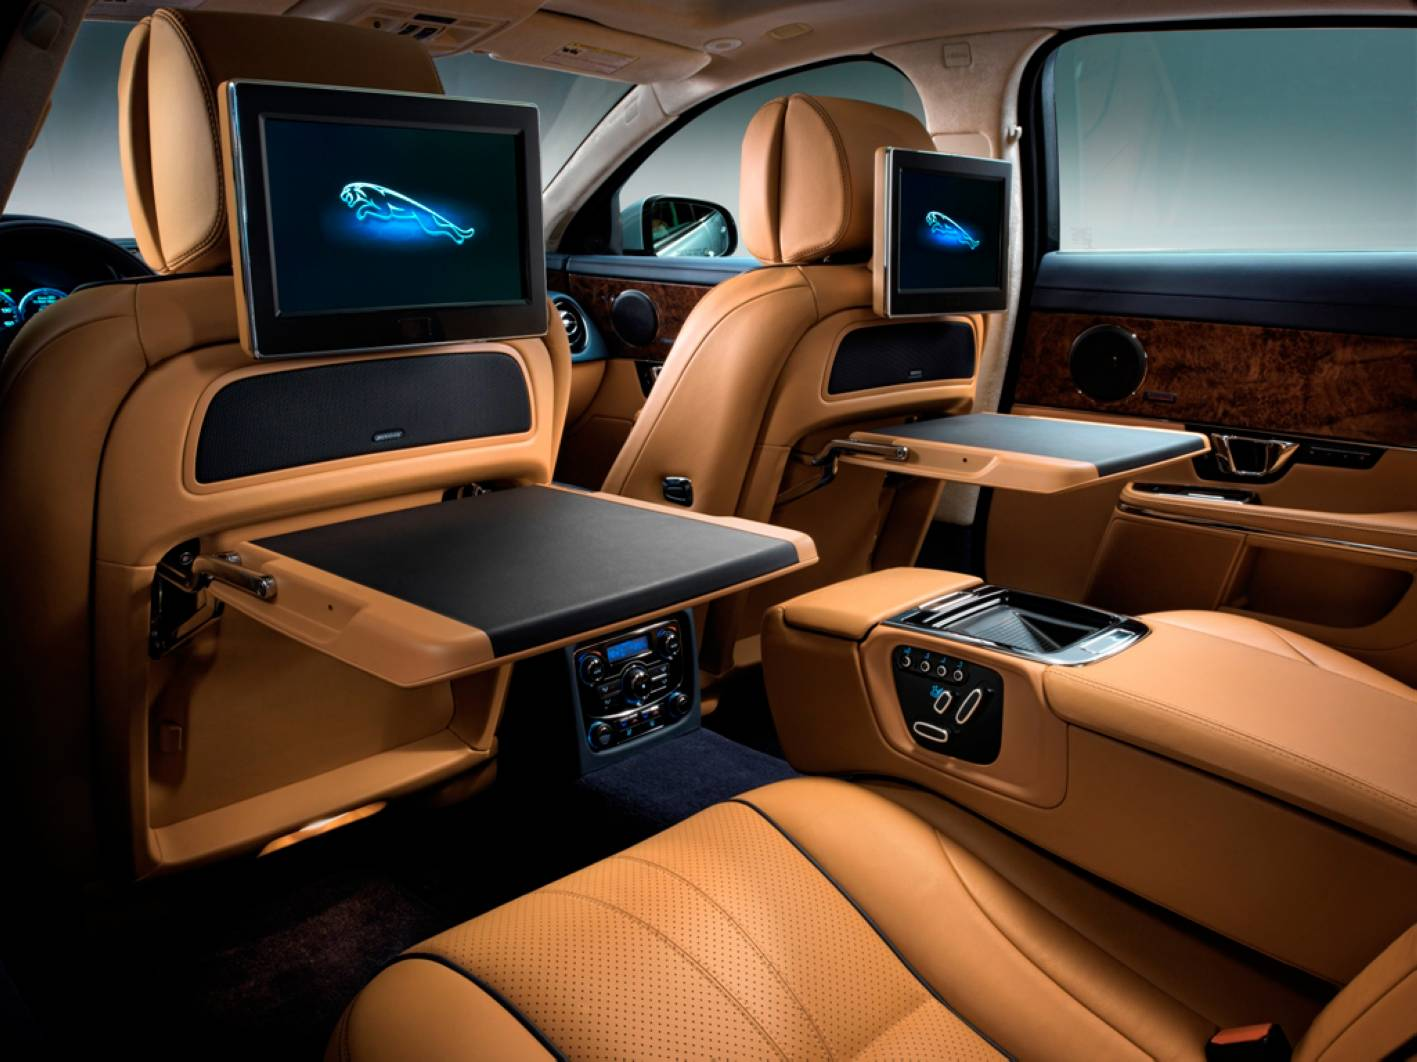 stunning-design-of-the-brown-leather-seats-ideas-with-lcd-at-the-back-as-the-jaguar-xe-2015-interior-ideas